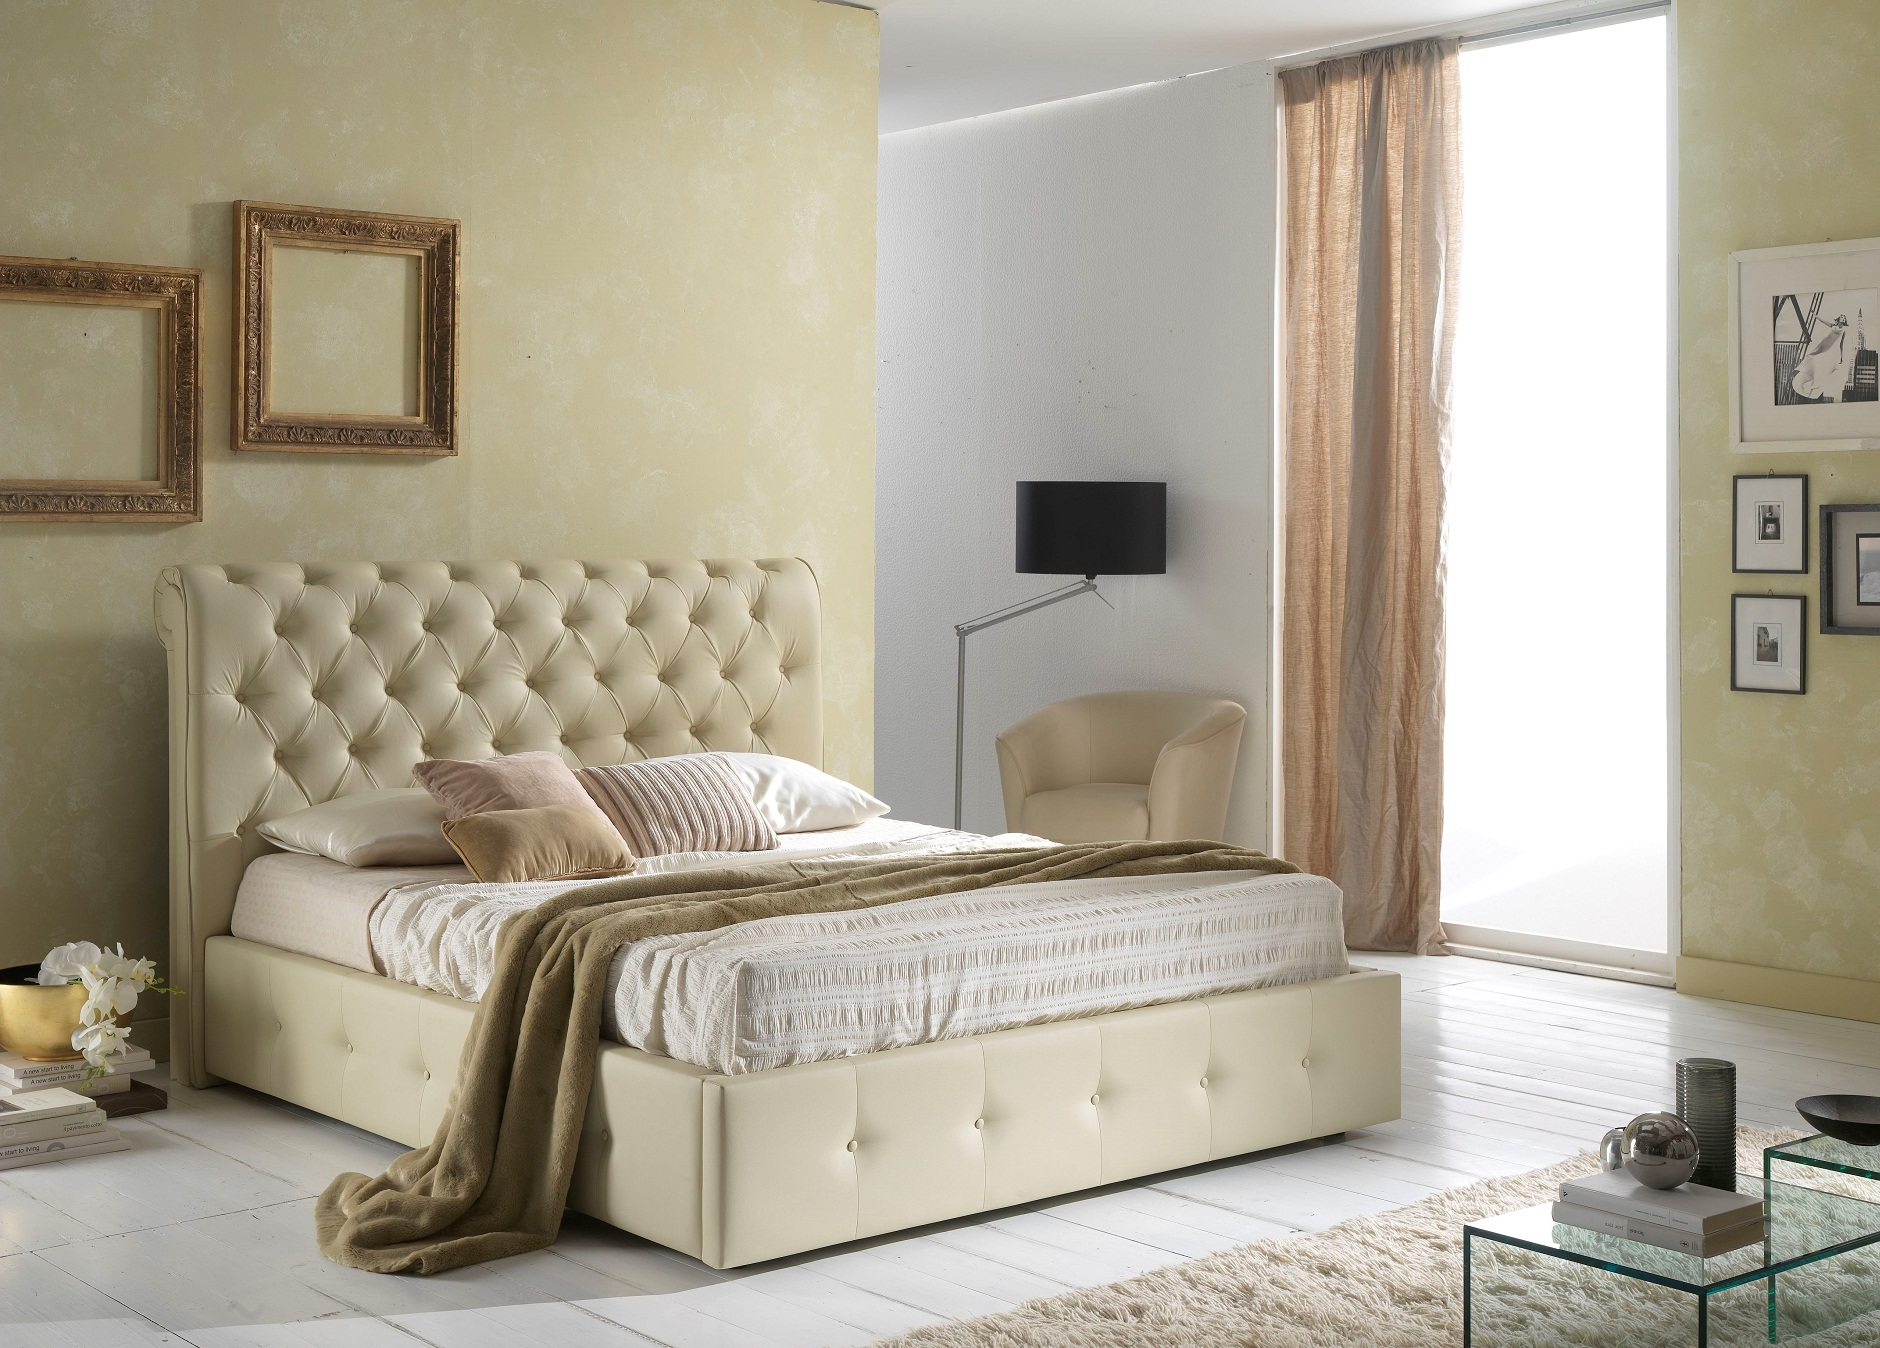 bett para 160x200 cm mit stauraum polster beige creme pen. Black Bedroom Furniture Sets. Home Design Ideas